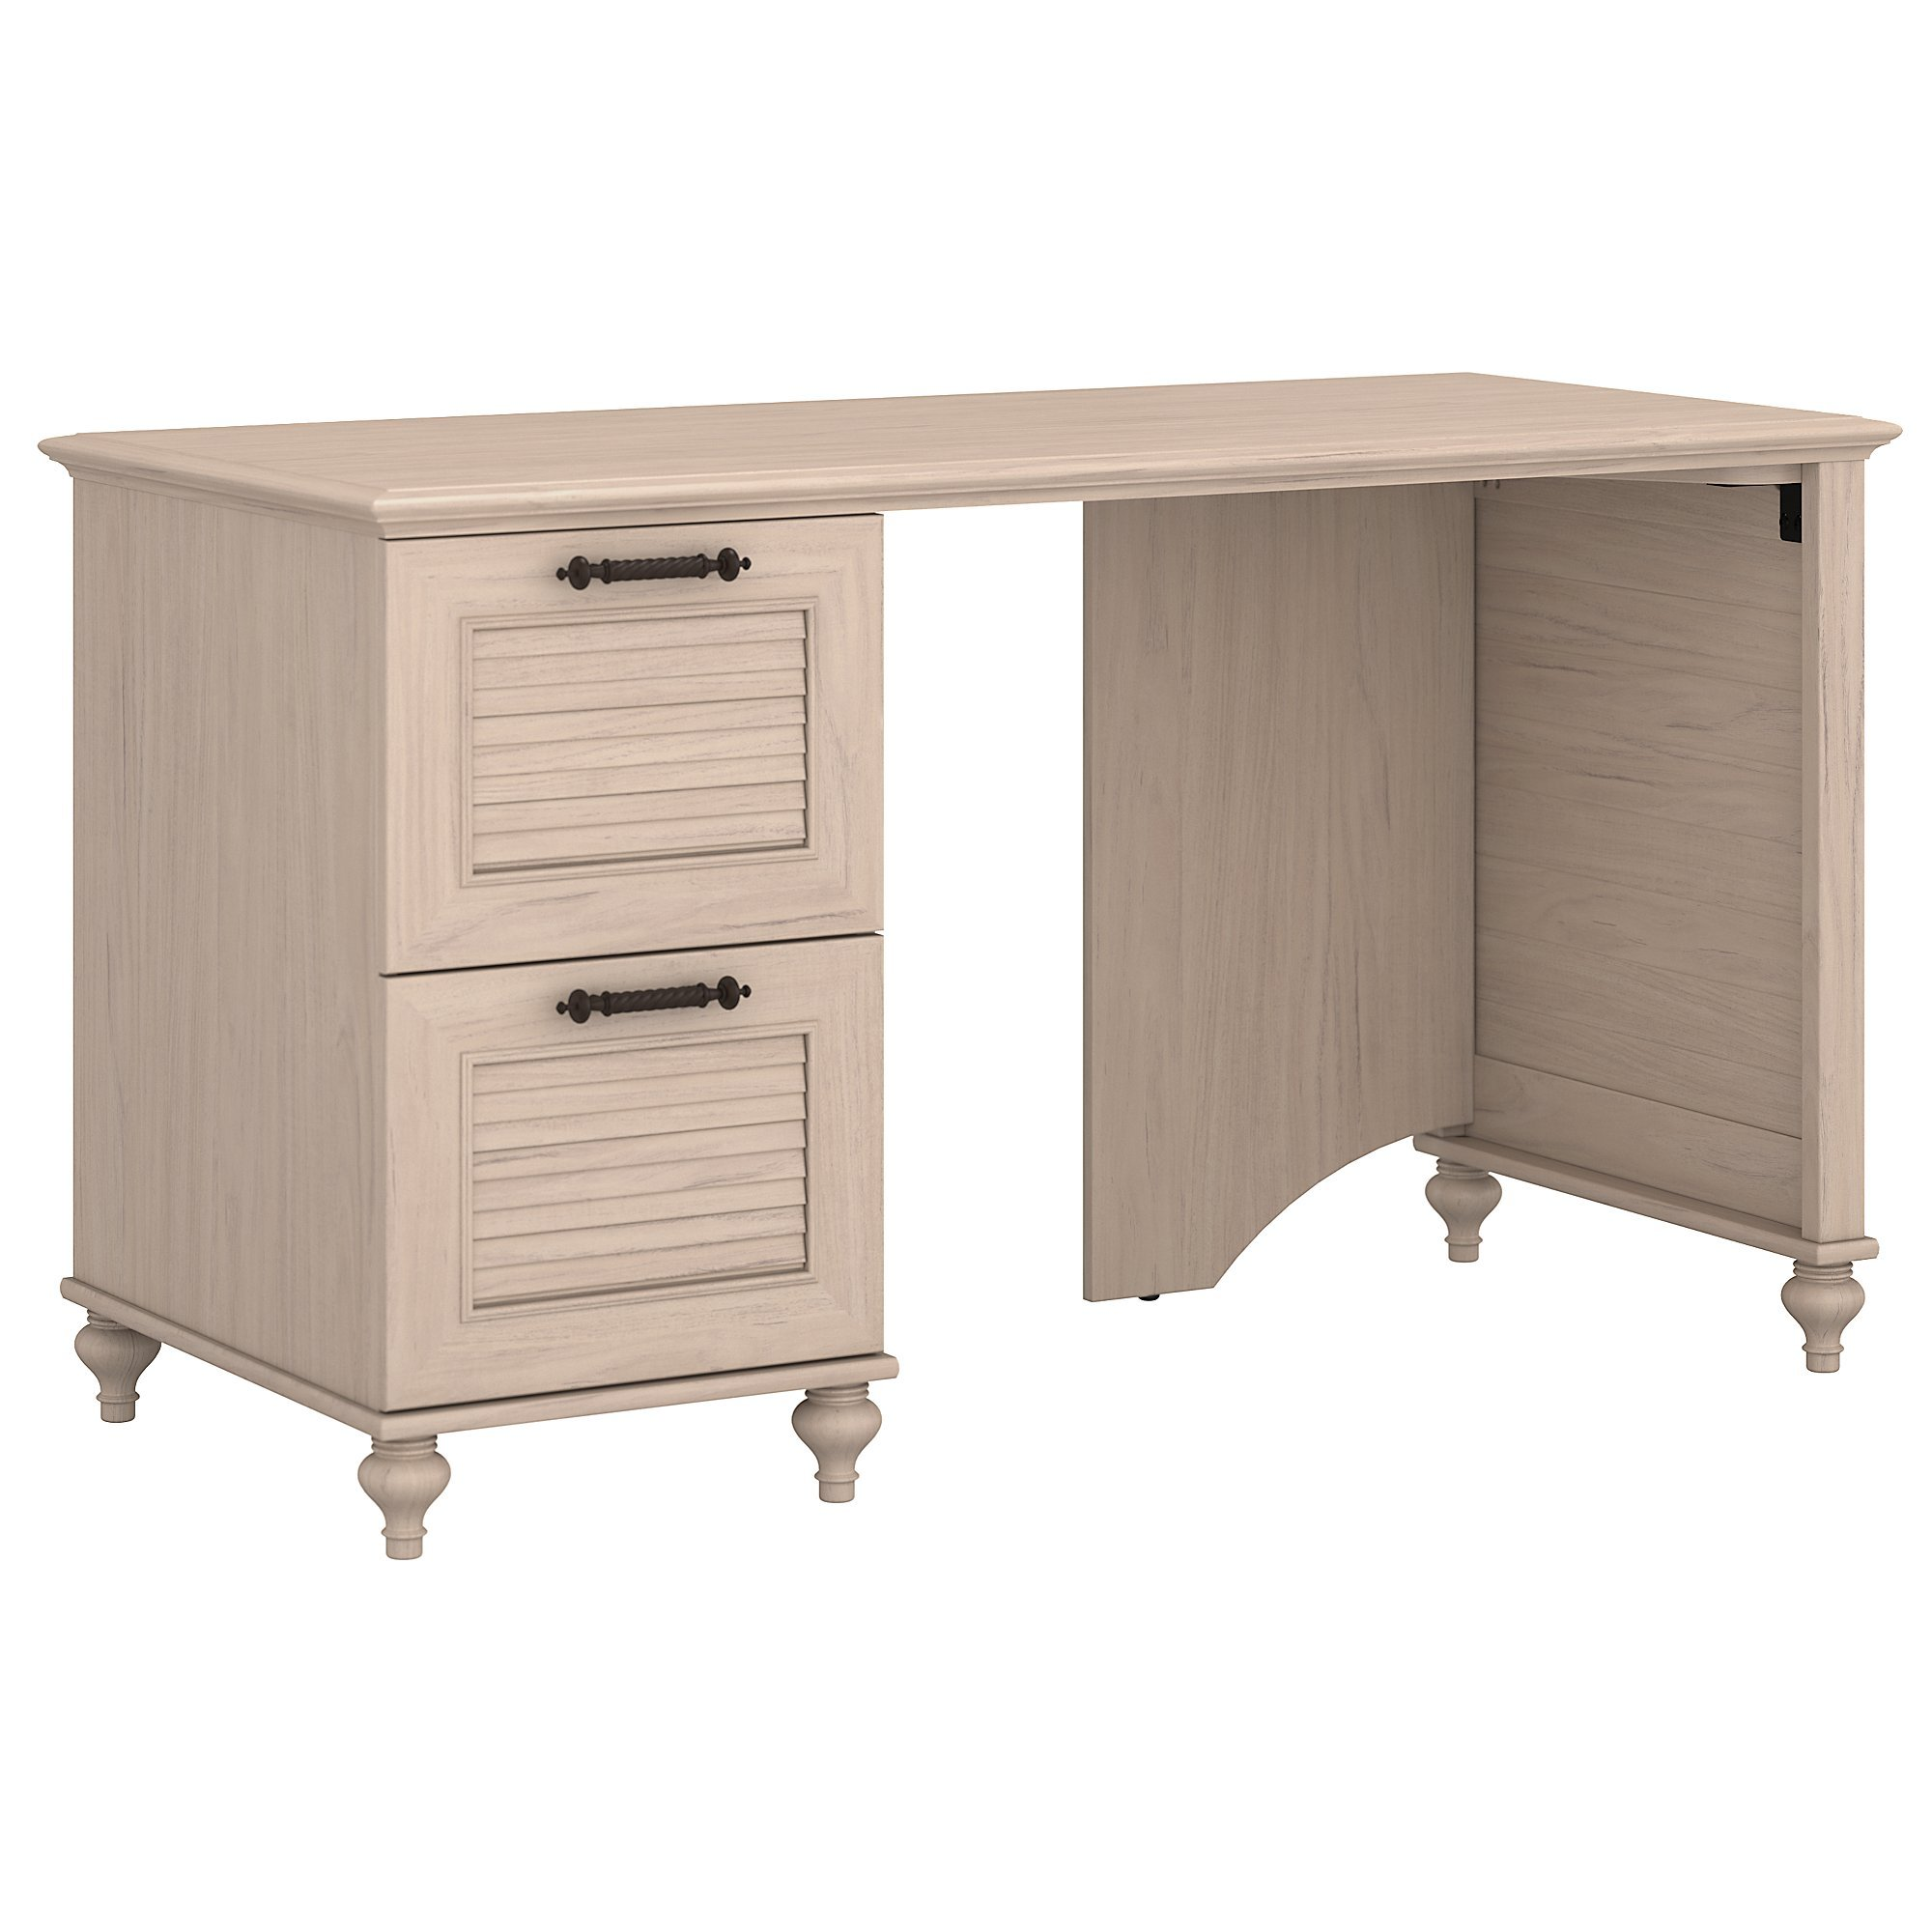 kathy ireland Home by Bush Furniture Volcano Dusk 51W Desk with 2 Drawer Pedestal in Driftwood Dreams